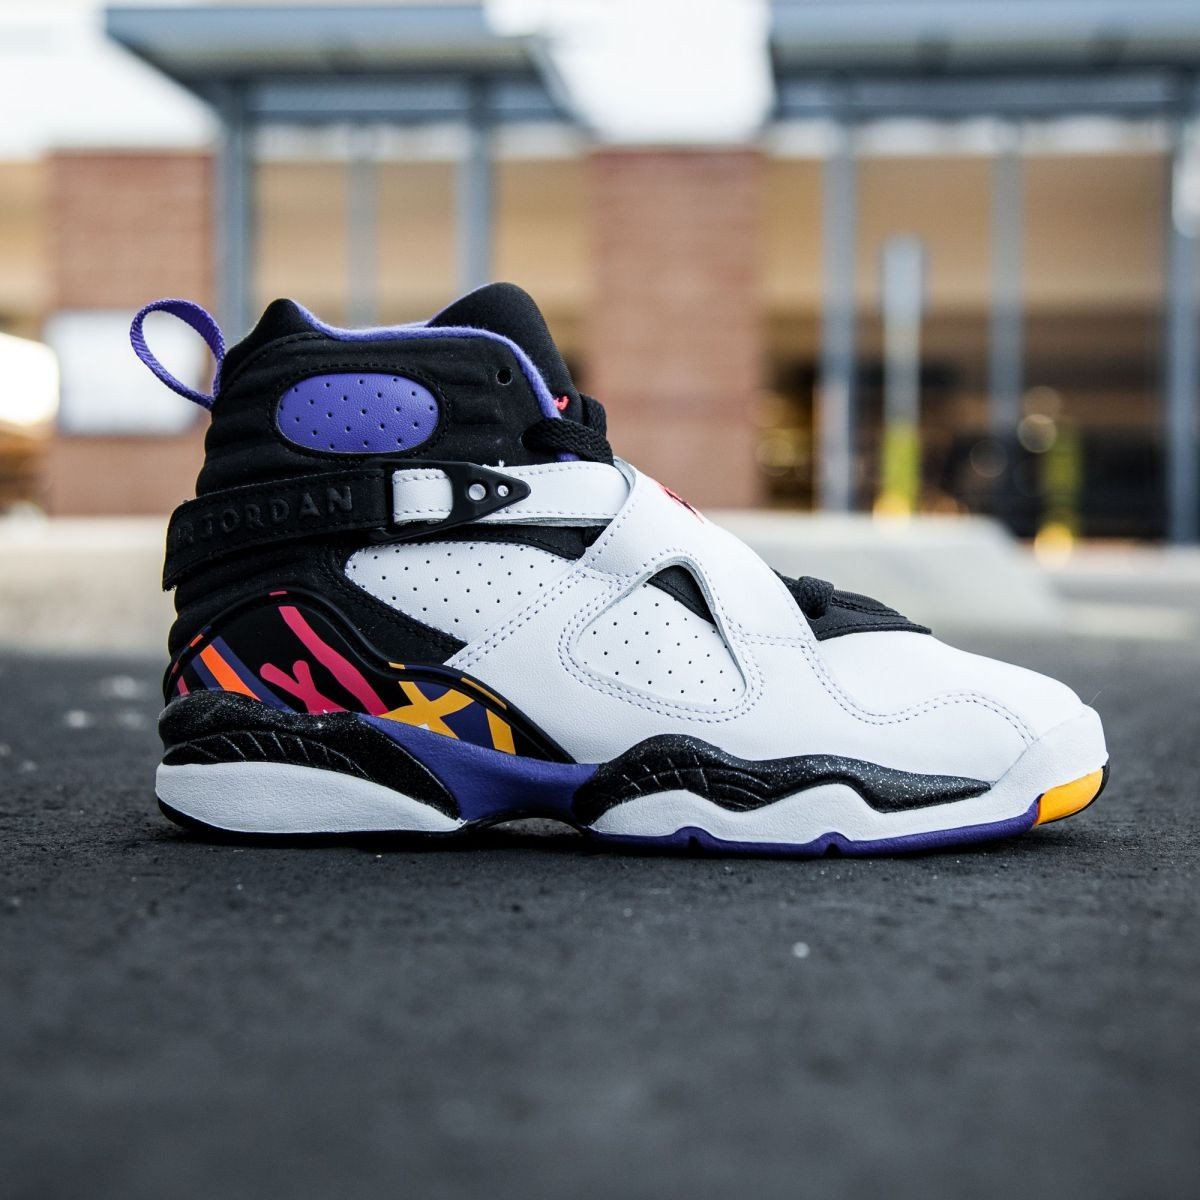 promo code 71cda a6952 Air Jordan 8 Retro BG - Three-Peat Big Kids (white / infrrd 23 / black /  bright concord)